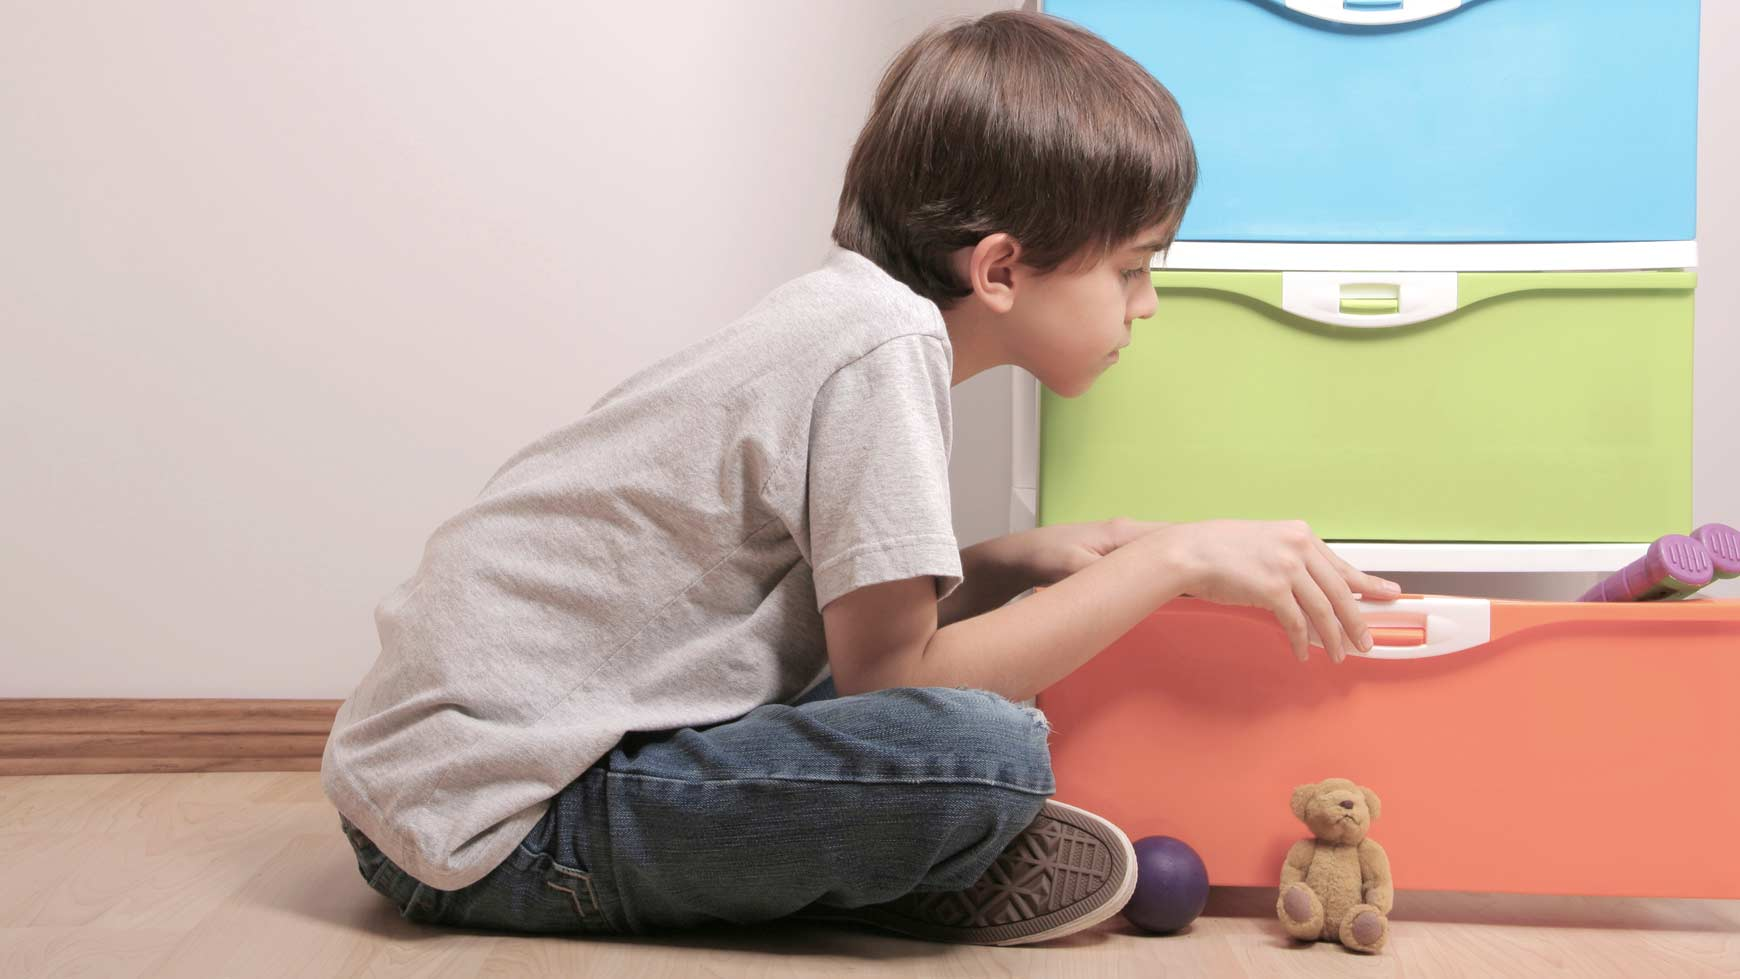 What Activities Are Good For Adhd Kids